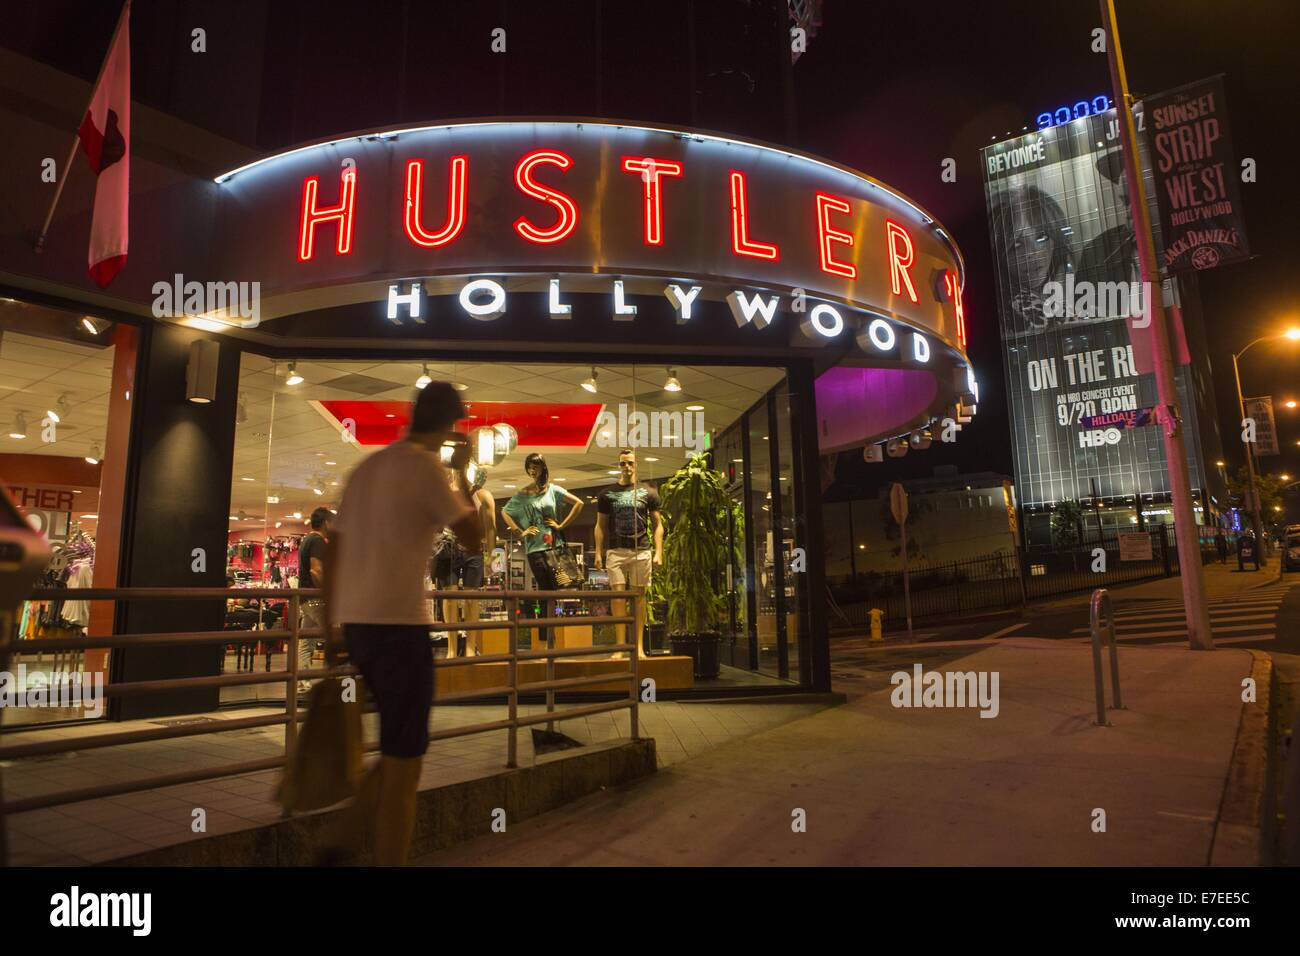 Pussy hustler hollywood west ca plant